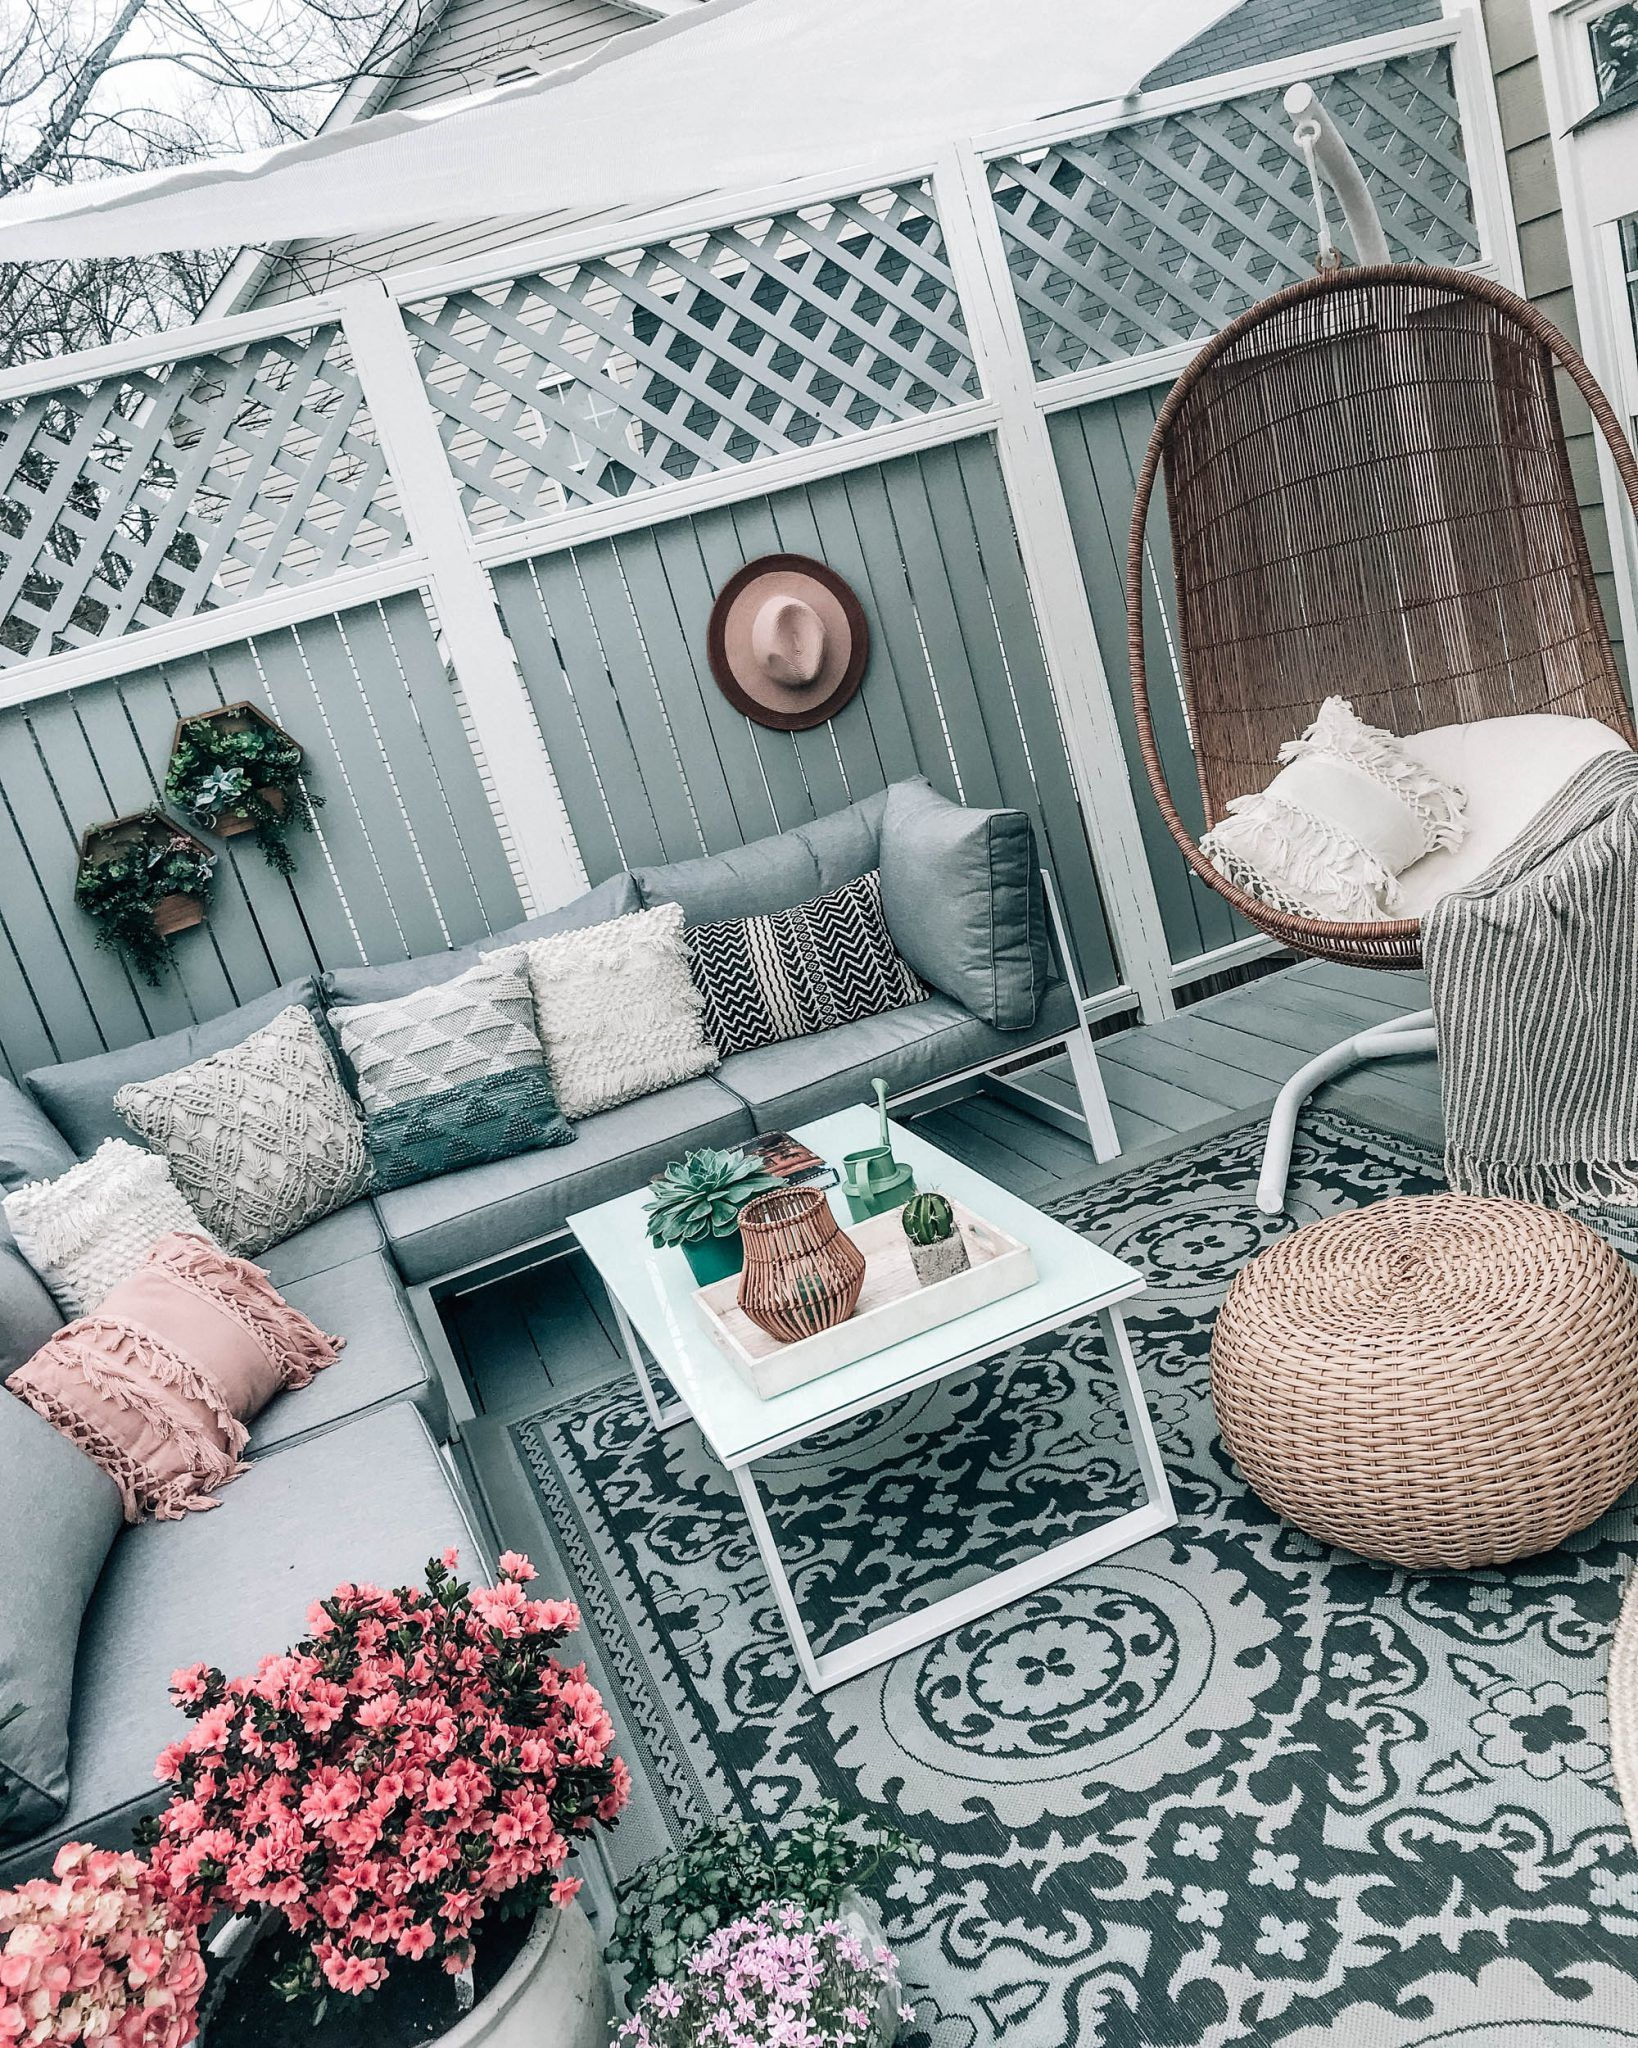 Designing Our Outdoor Space Diy Patio And Deck Makeover On A